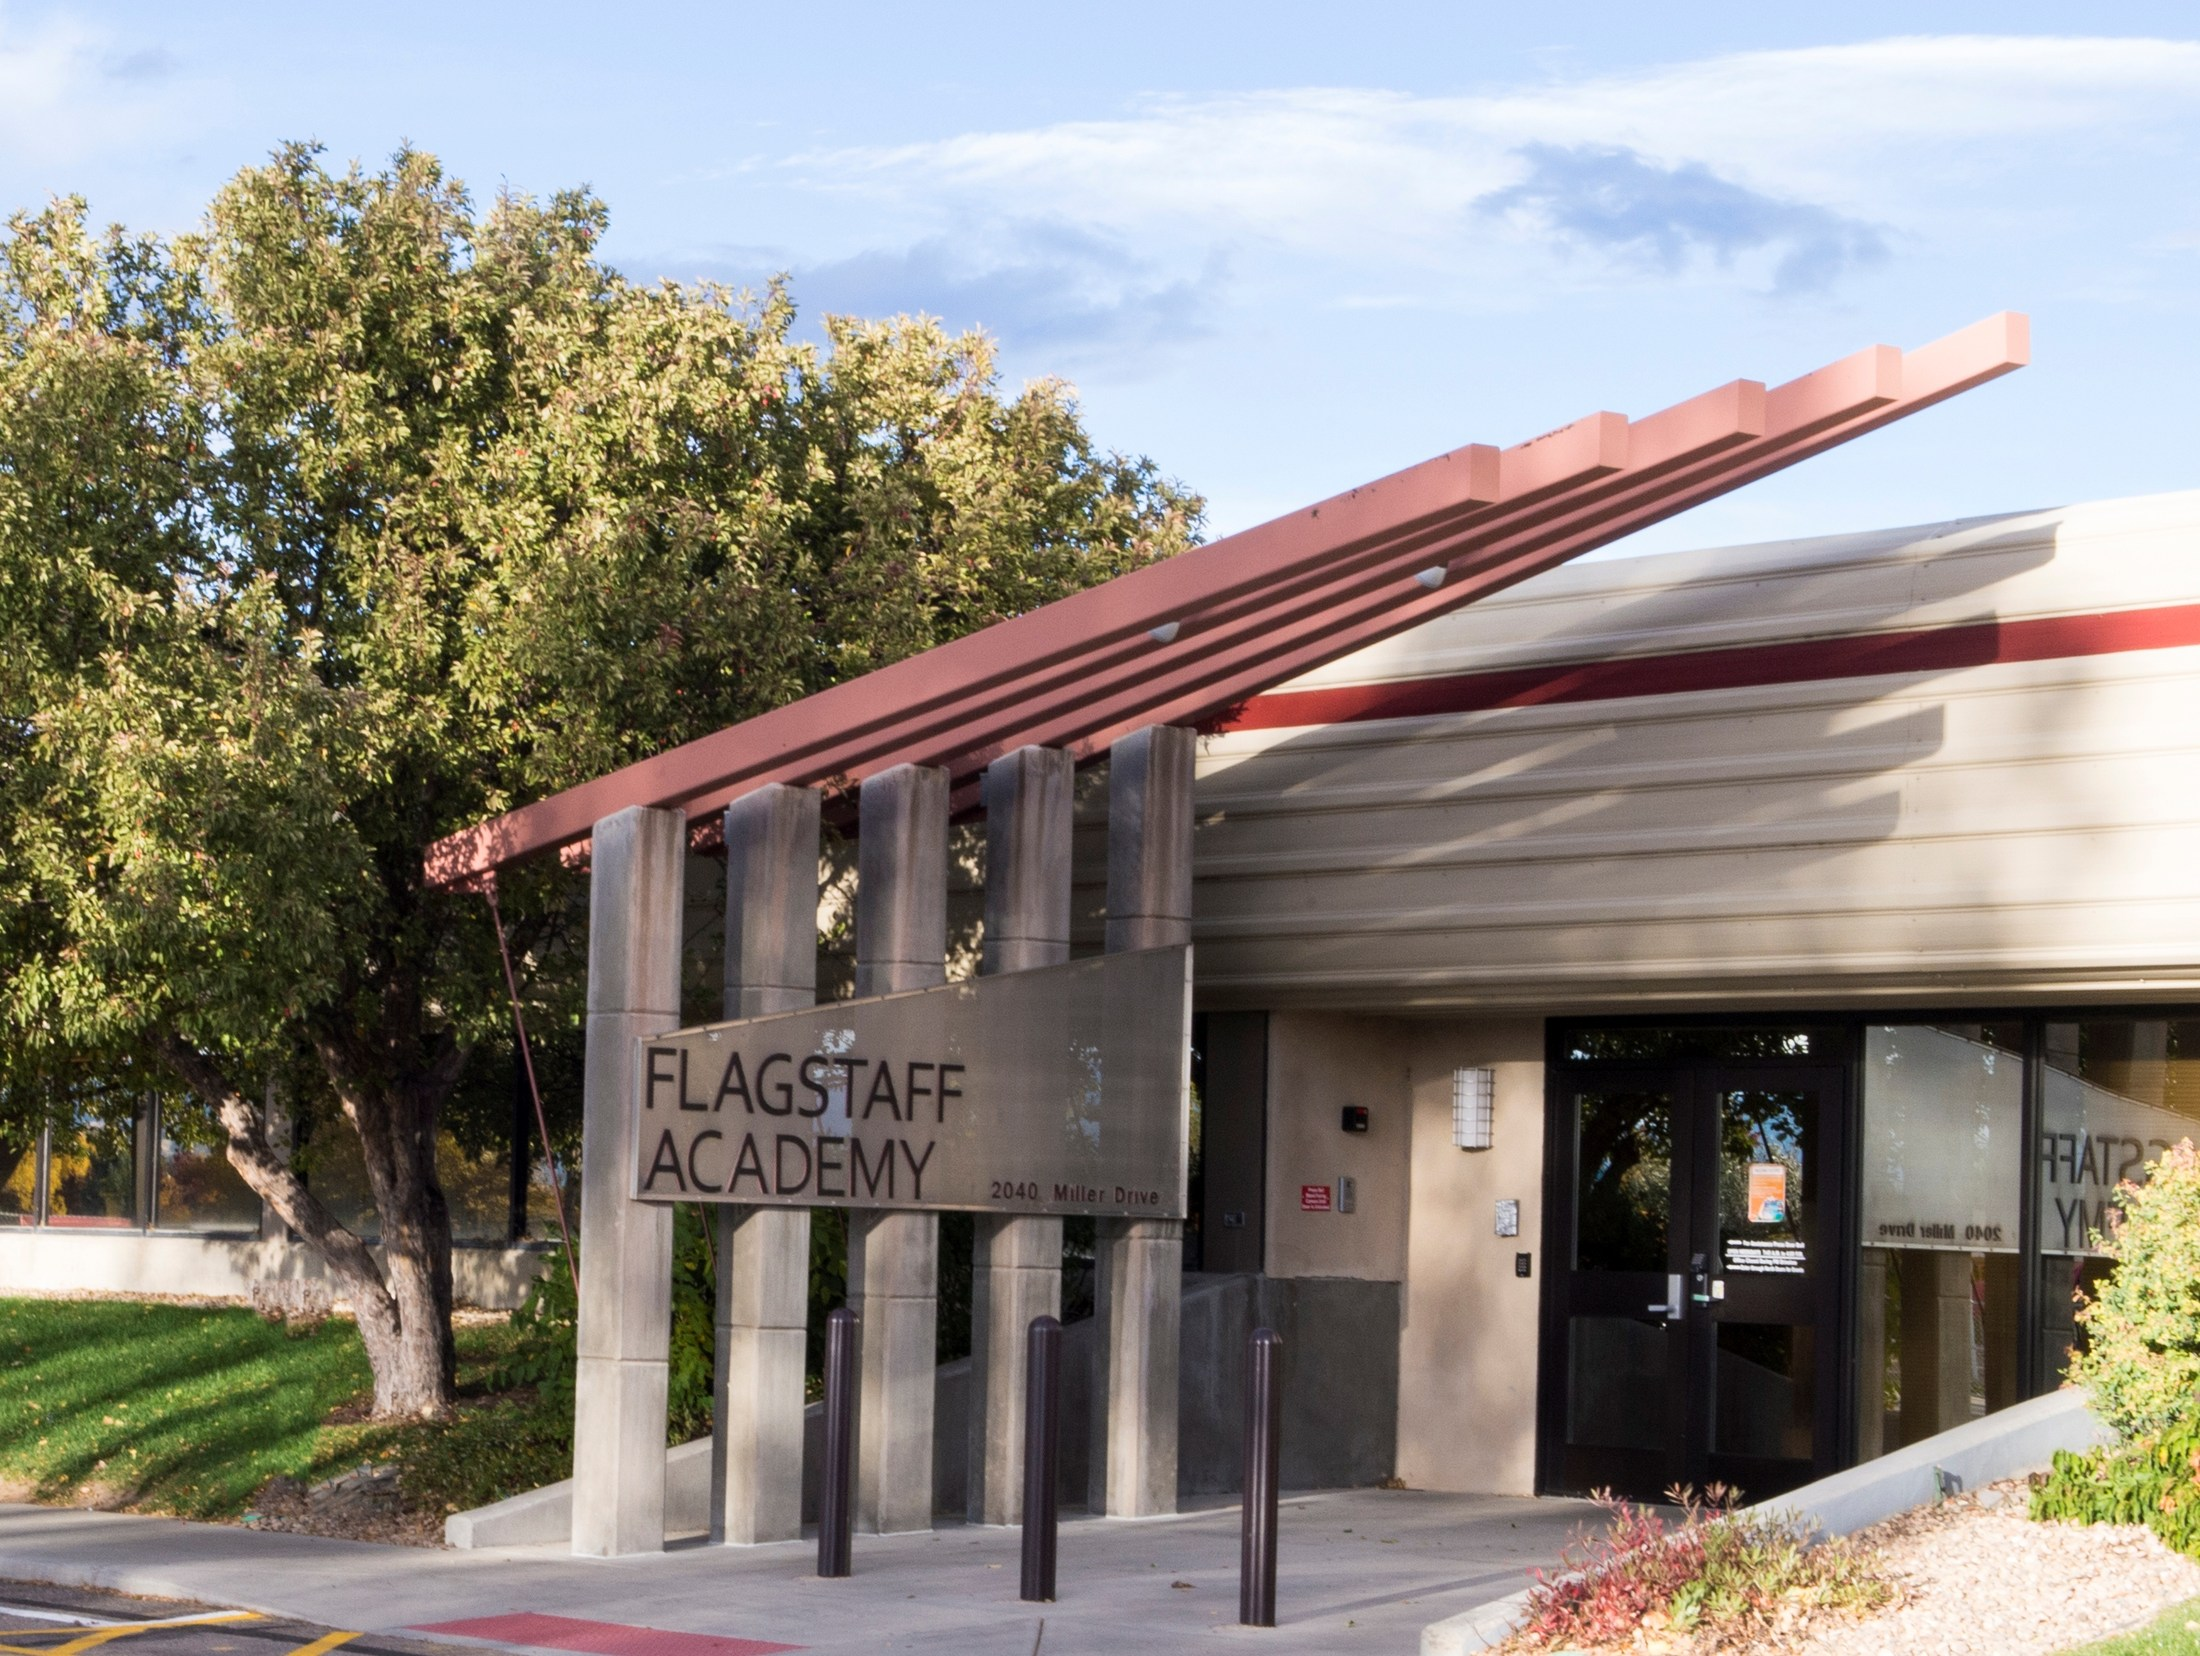 Photo of front of Flagstaff Academy